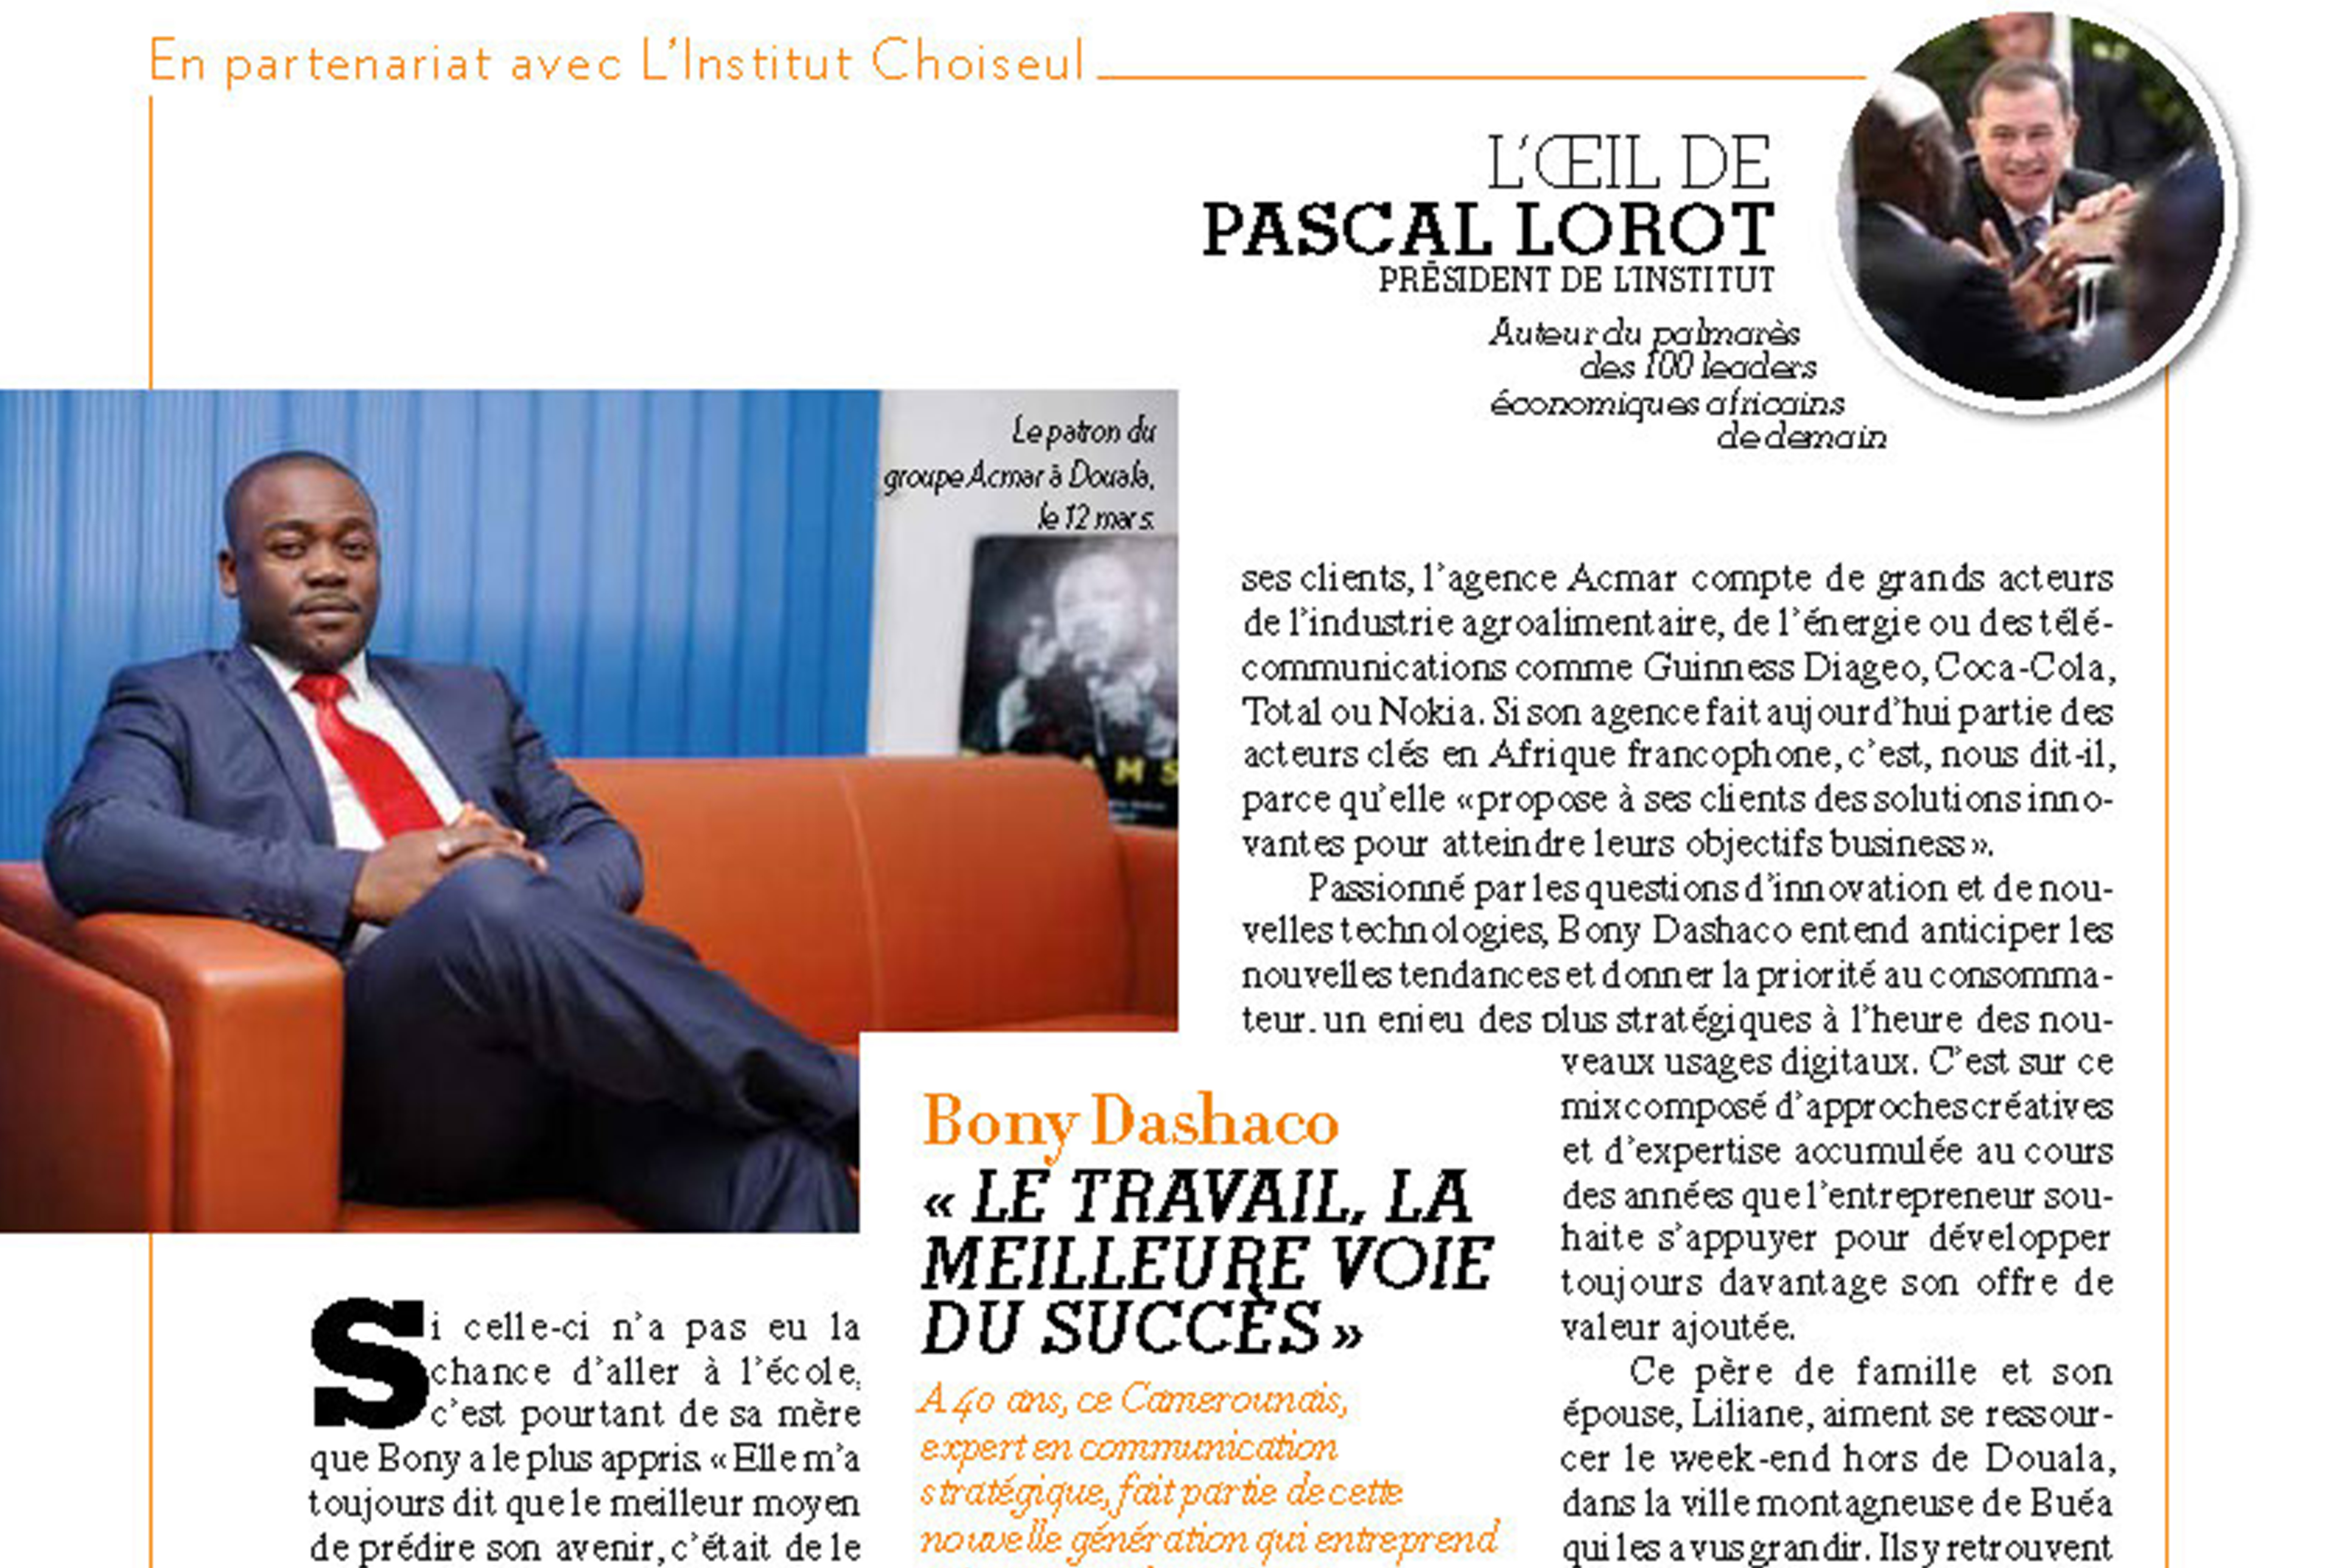 L'oeil de Pascal Lorot – Portrait of Bony Dashaco – Paris Match Afrique